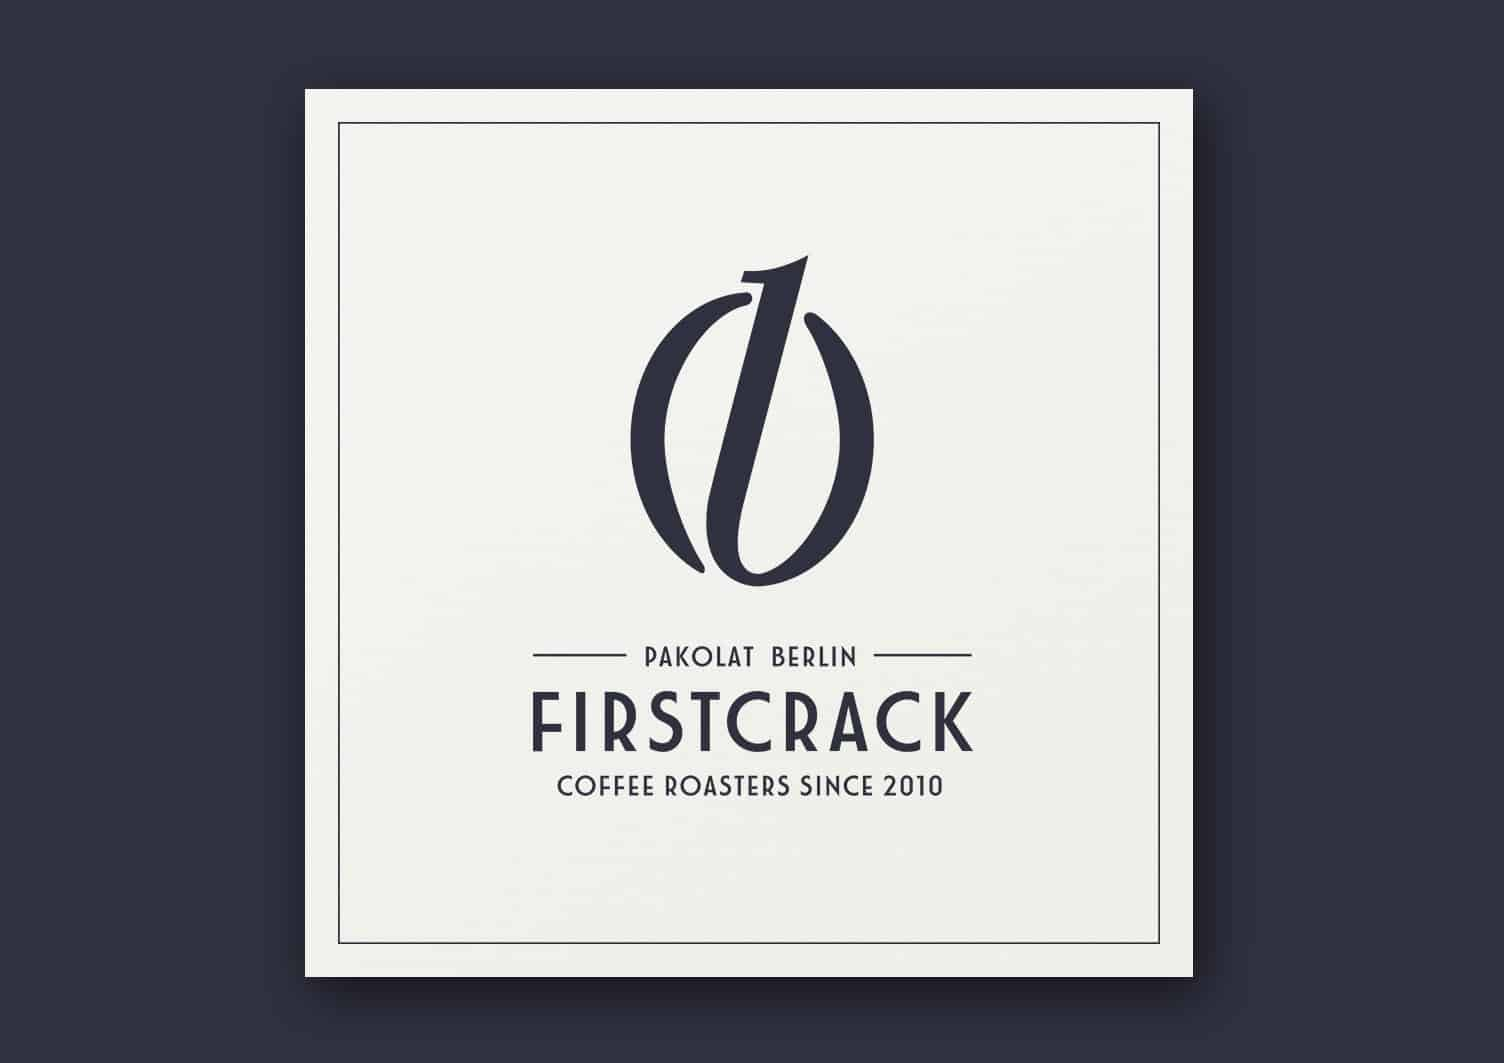 Logodesign Berlin Firstcrack